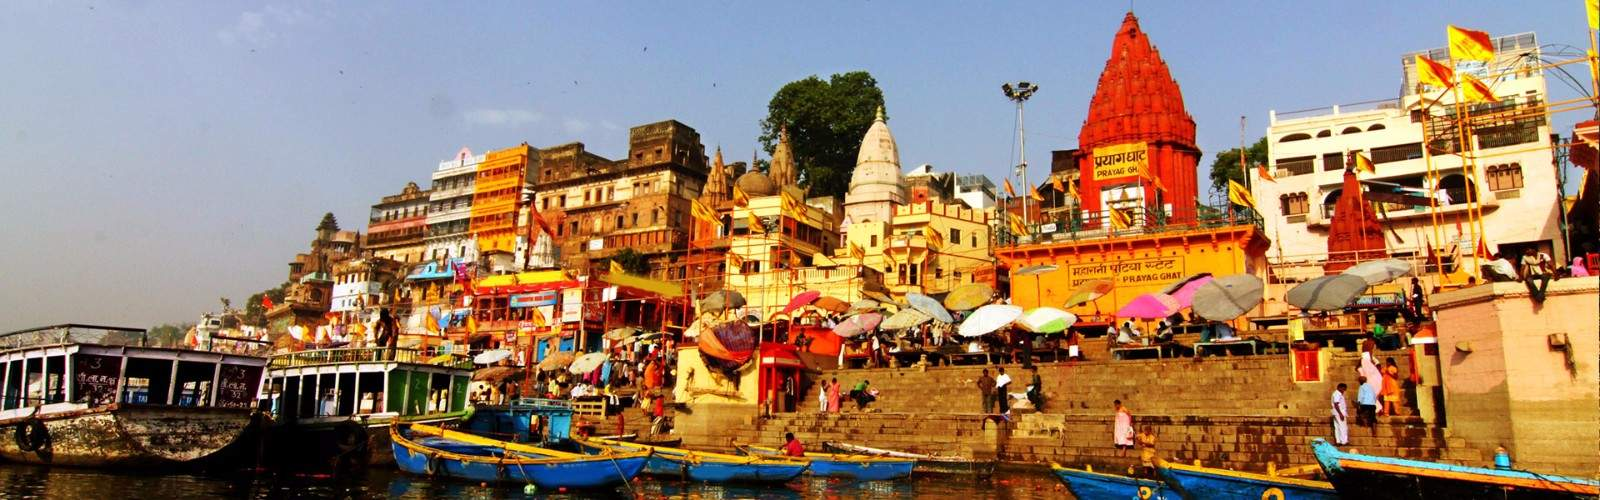 Ganges Boat Ride Holidays